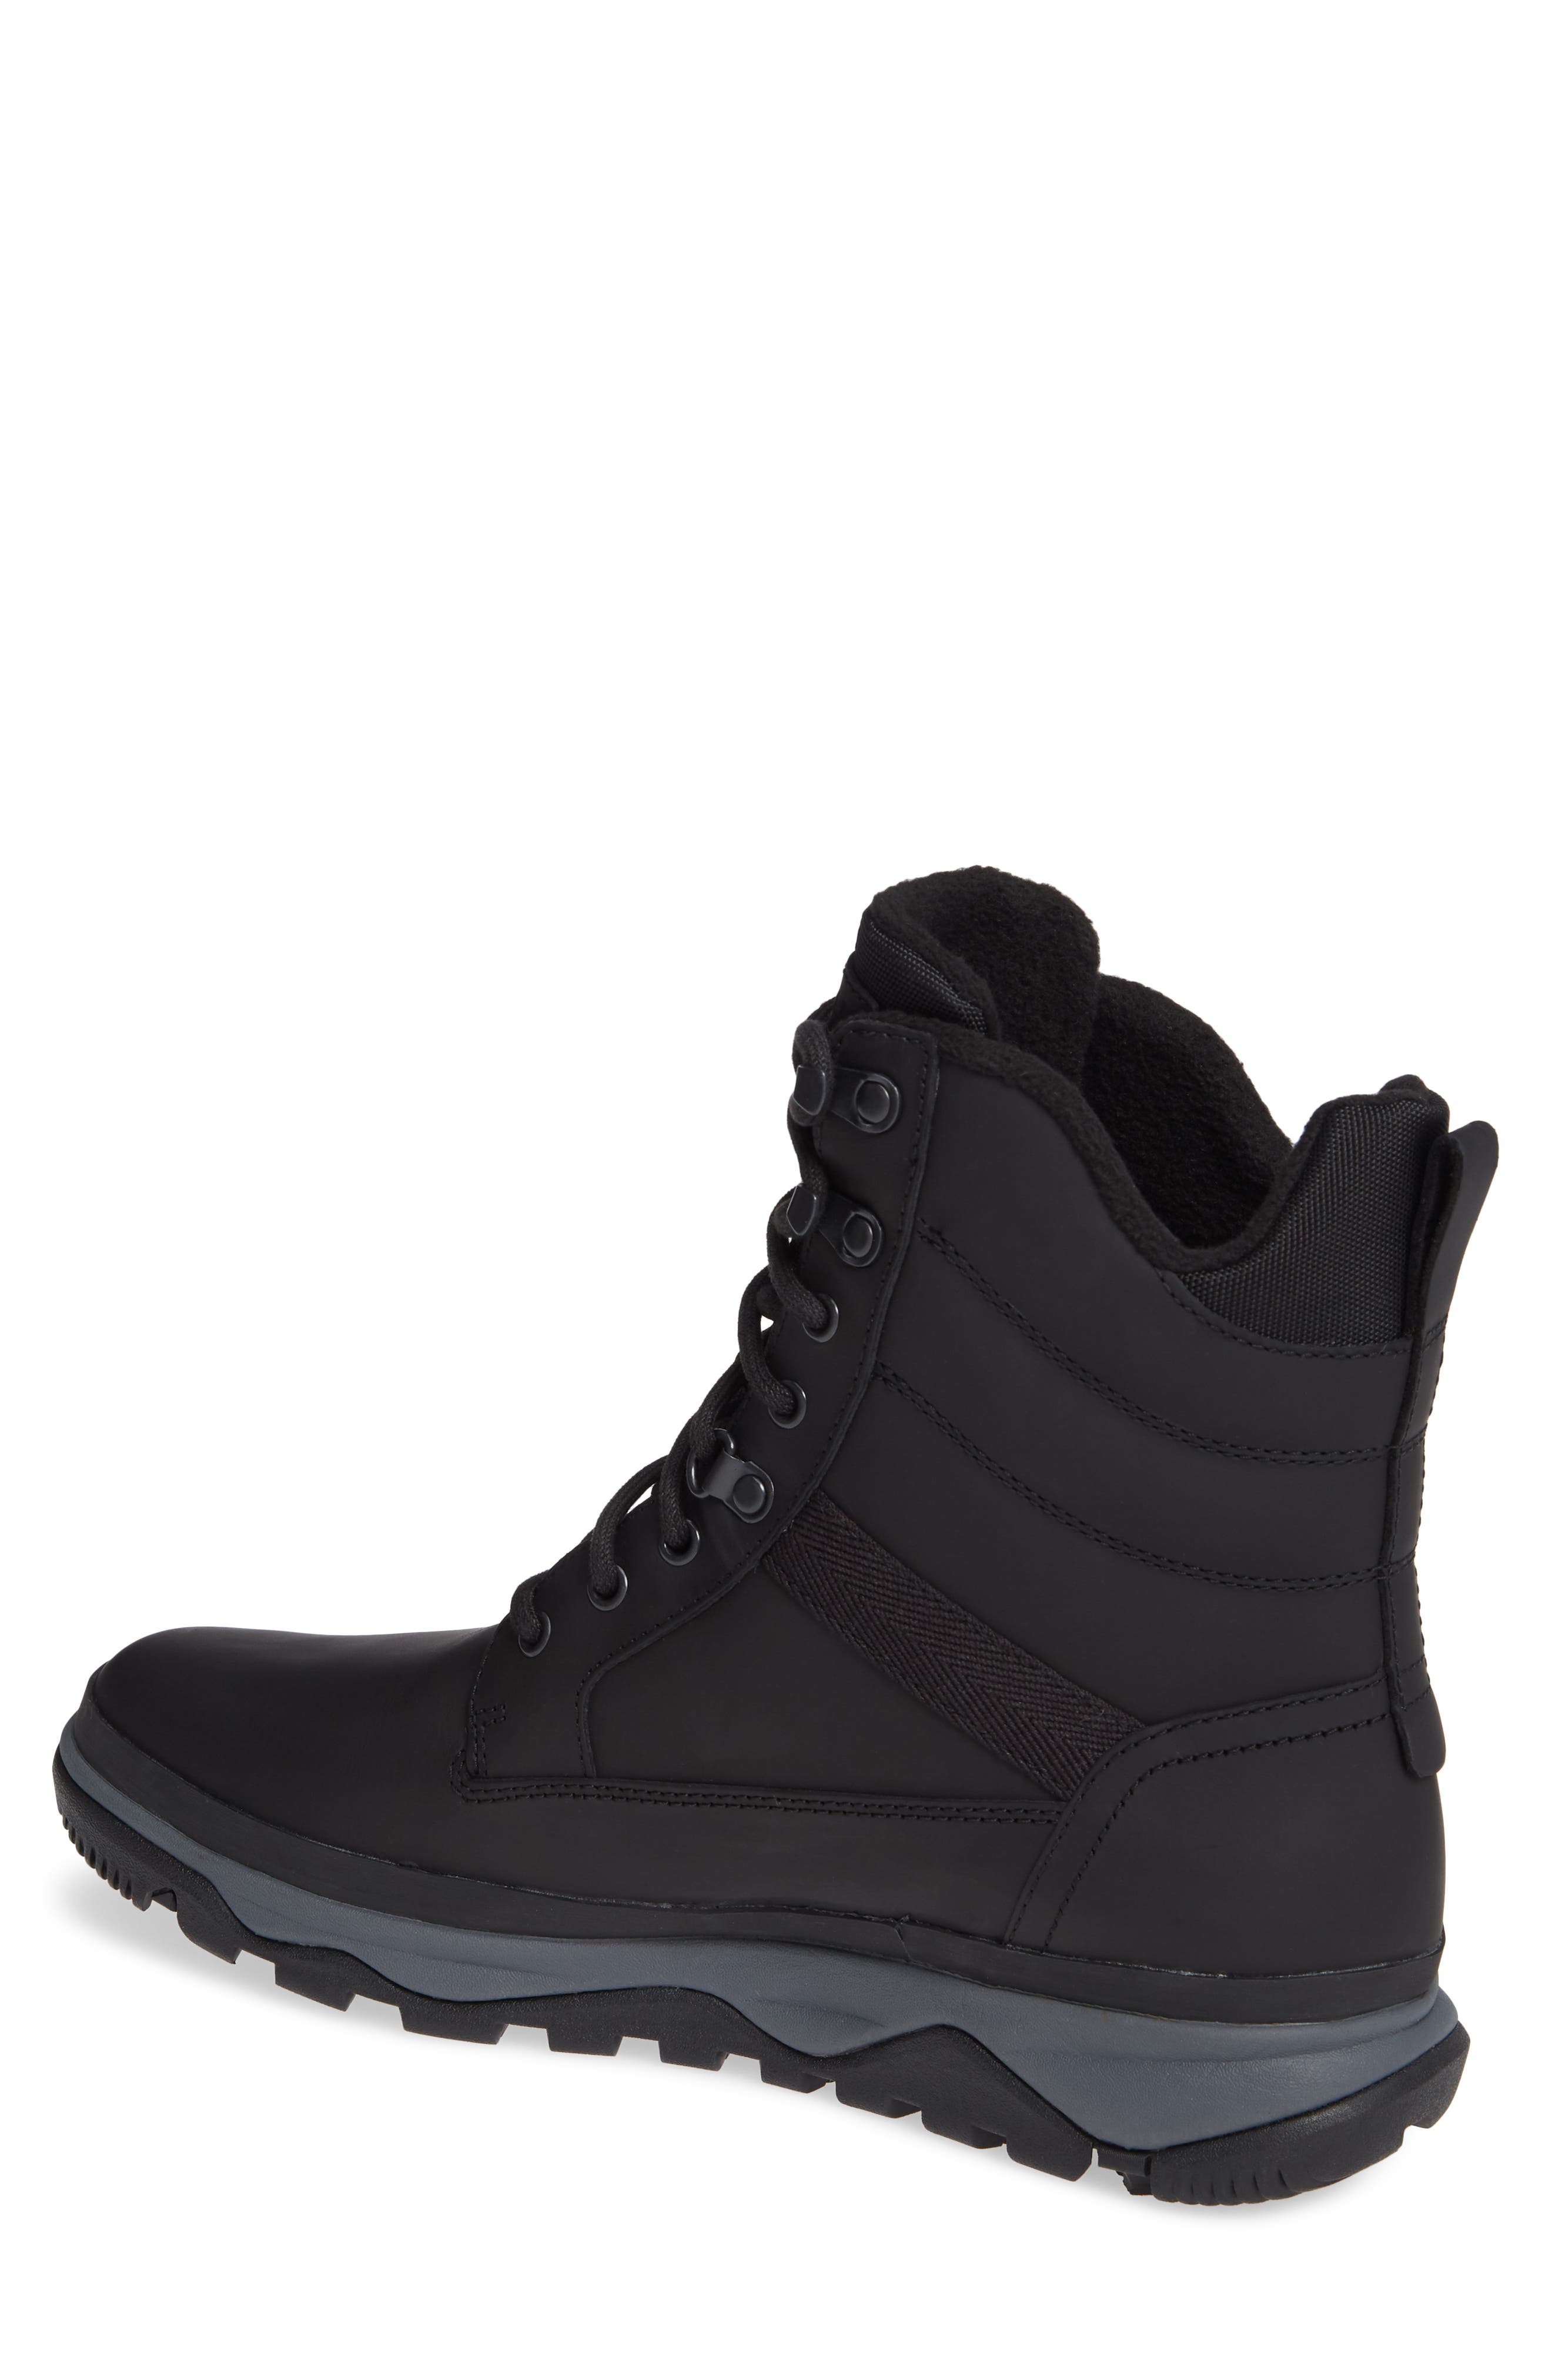 Tremblant Insulated Waterproof Boot,                             Alternate thumbnail 2, color,                             BLACK